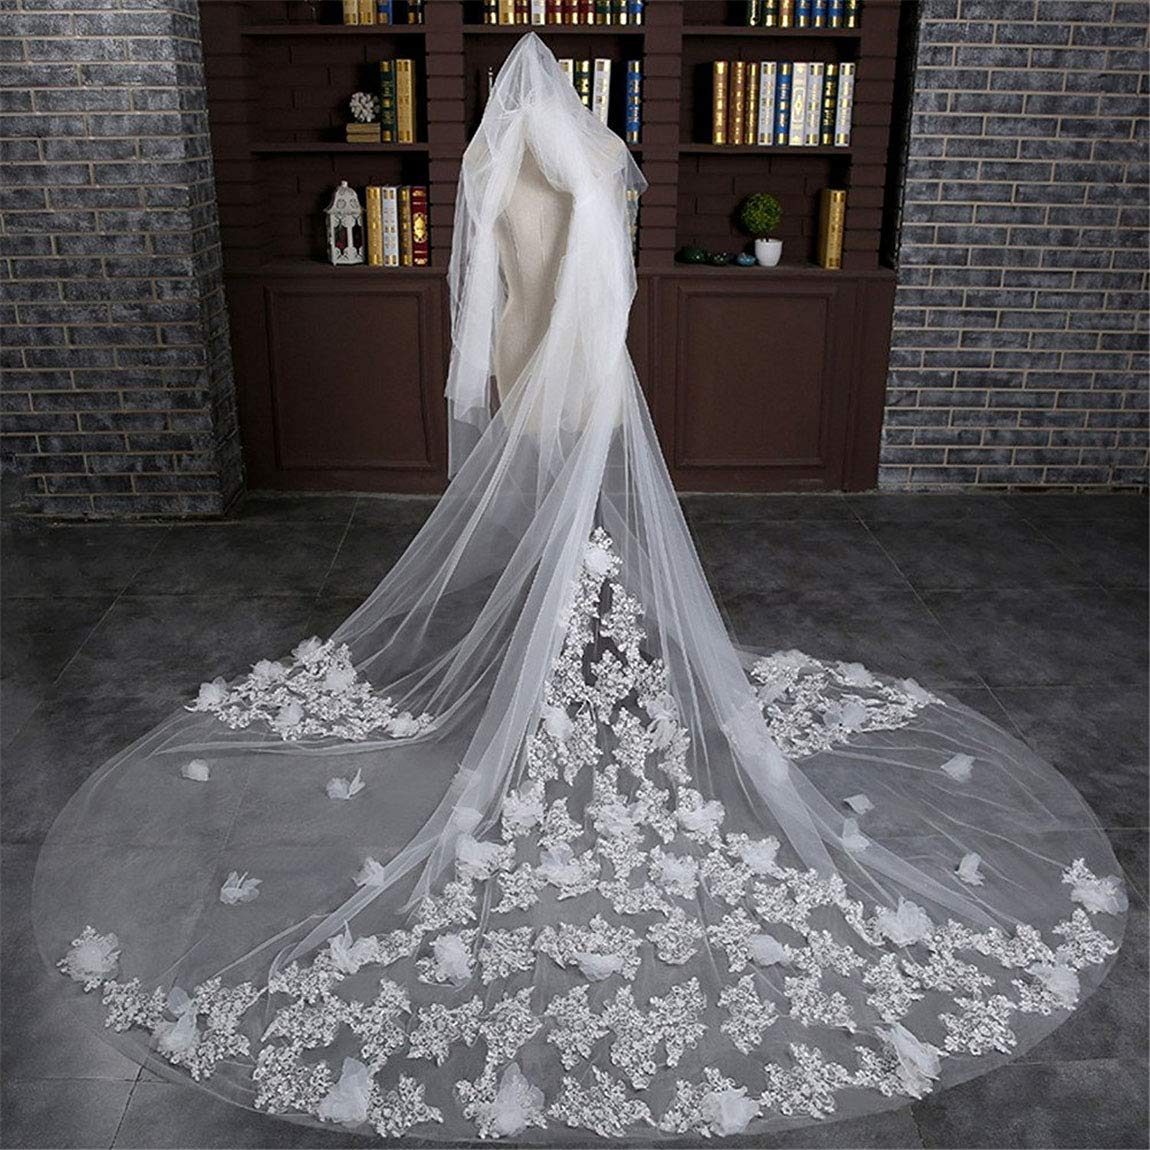 Fenghuavip 3D Flowers Cathedral Veils 2 Tier Sequins Wedding Veil for Bride with Comb